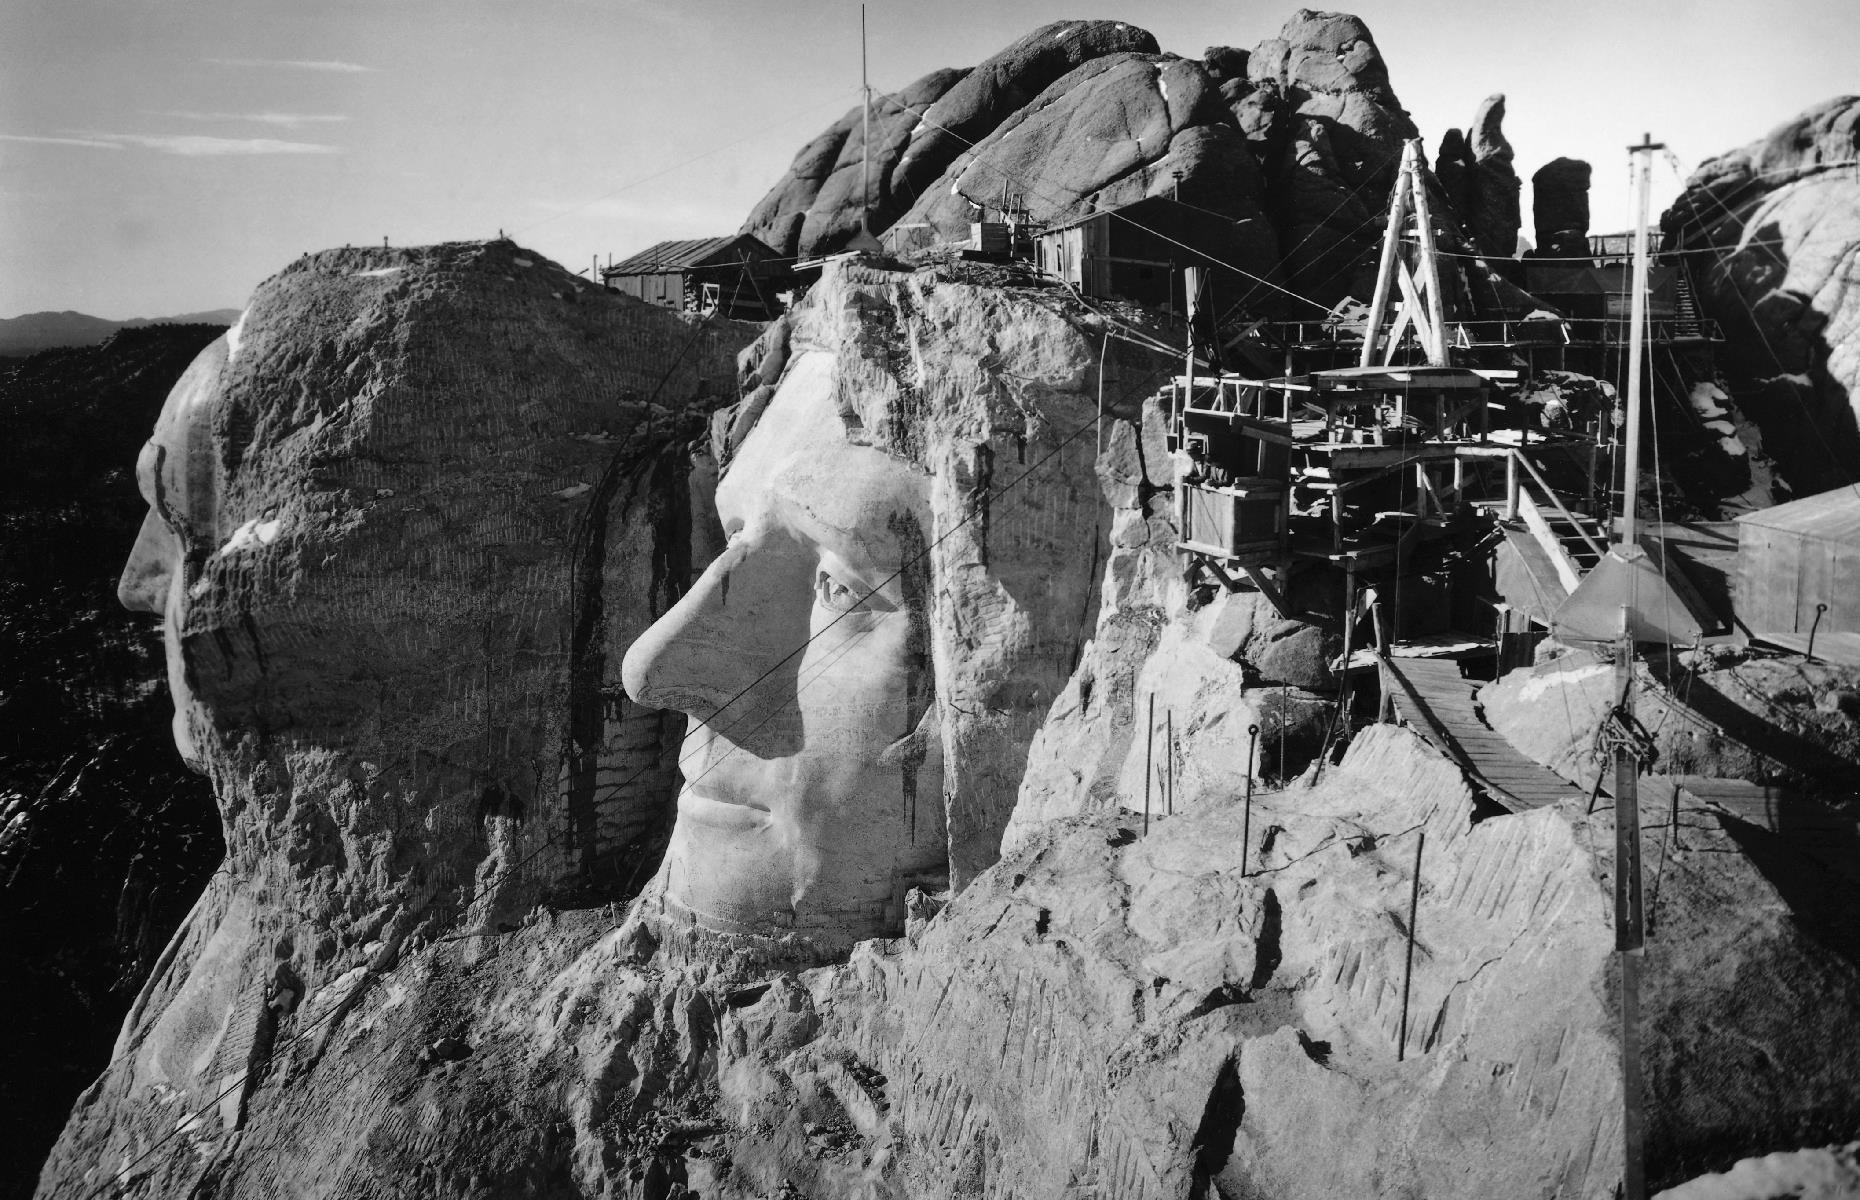 Slide 33 of 51: The monument to four presidents of America – George Washington, Thomas Jefferson, Theodore Roosevelt and Abraham Lincoln – was carved into the rock in South Dakota's Black Hills region between 1927 and 1941. Pictured here during construction in 1940 is the profile of Jefferson and the outline of Washington in the distance, as seen from the top of Lincoln's head. Today, Mount Rushmore is a popular landmark usually receiving around two million visitors a year. Check out the hidden secrets of this and other American tourist attractions here.